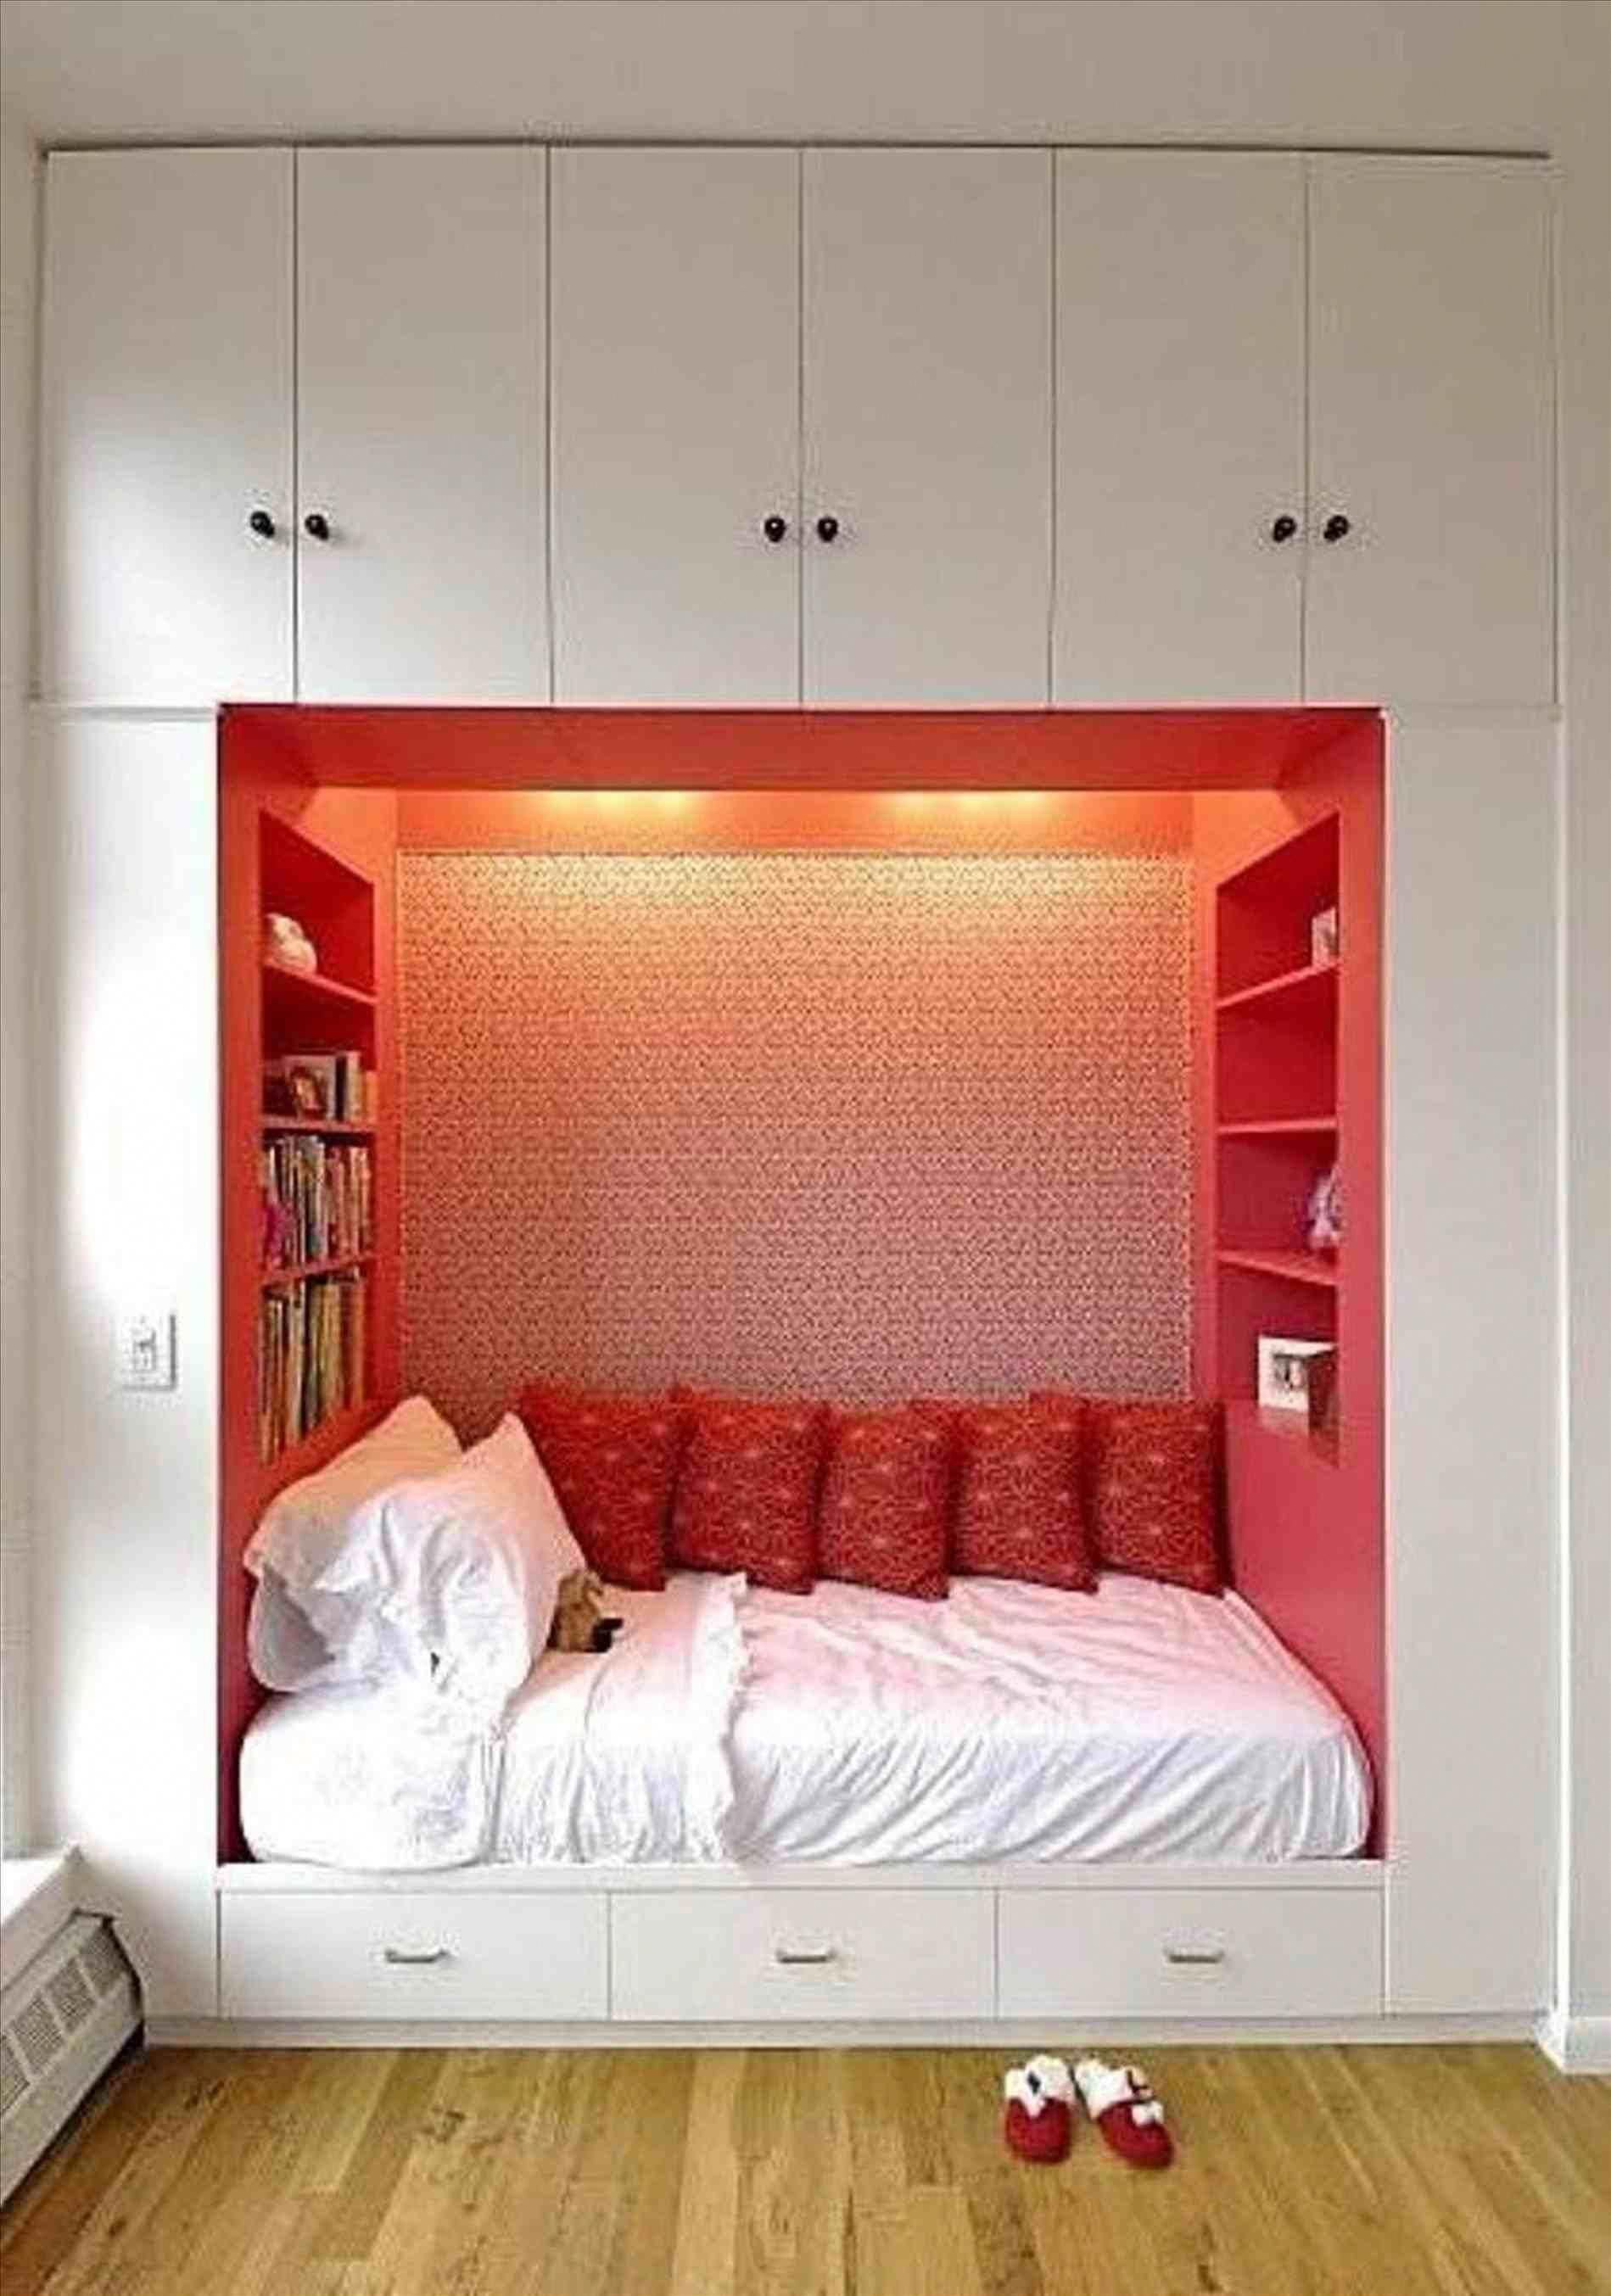 25 Top View Post Small Simple Bedroom Decorating Ideas For Couples Visit Homelivings Decor Ideas Small Bedroom Interior Bedroom Wooden Floor Remodel Bedroom